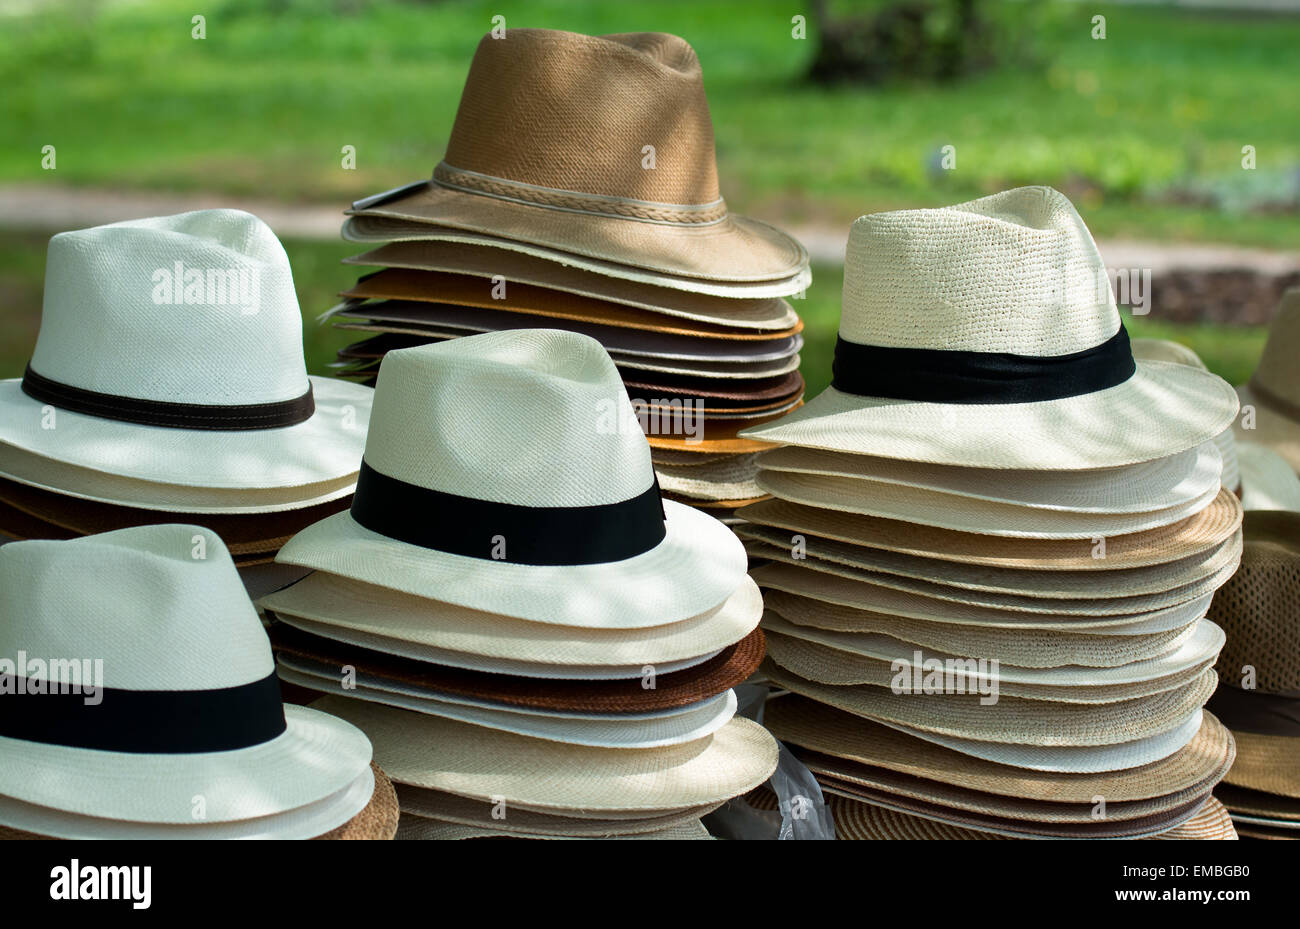 dce20dccb131bd Pile Of Assorted Hats For Sale At Outdoor Market Stock Photo ...